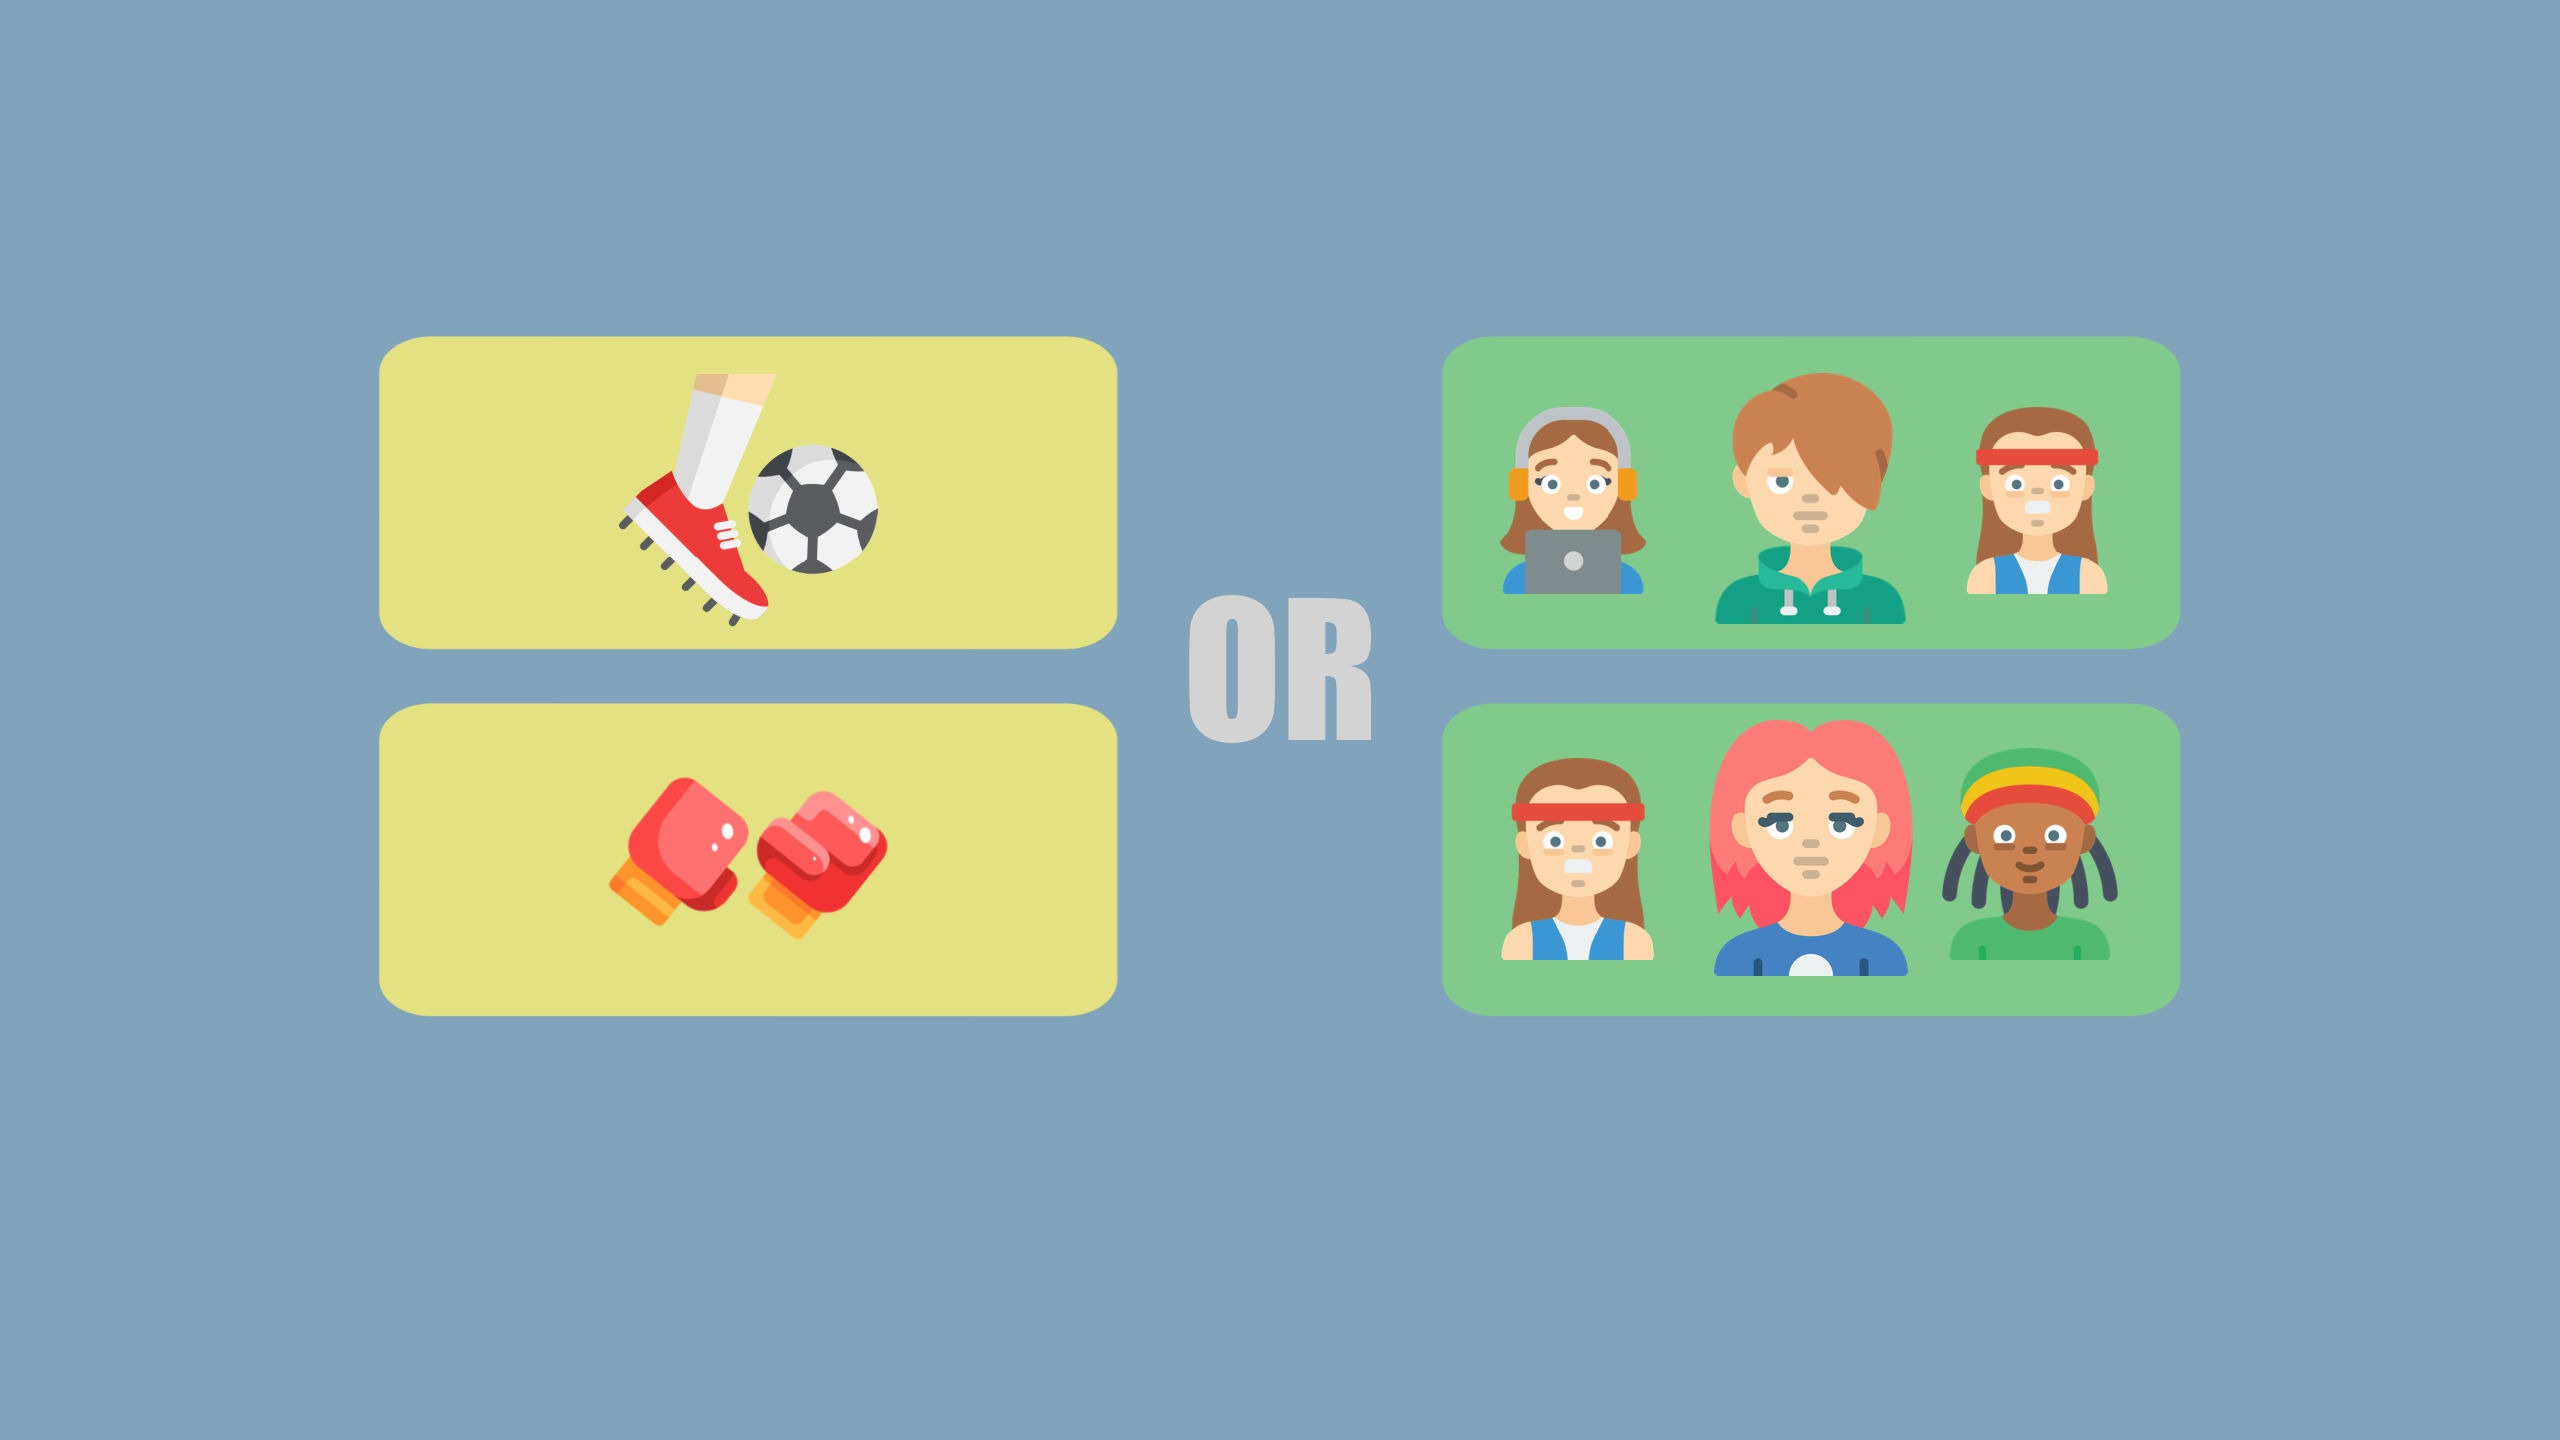 An image of a football and boxing glove on the left, sit next to two groups of people on the right to signify IELTS discuss both sides essays